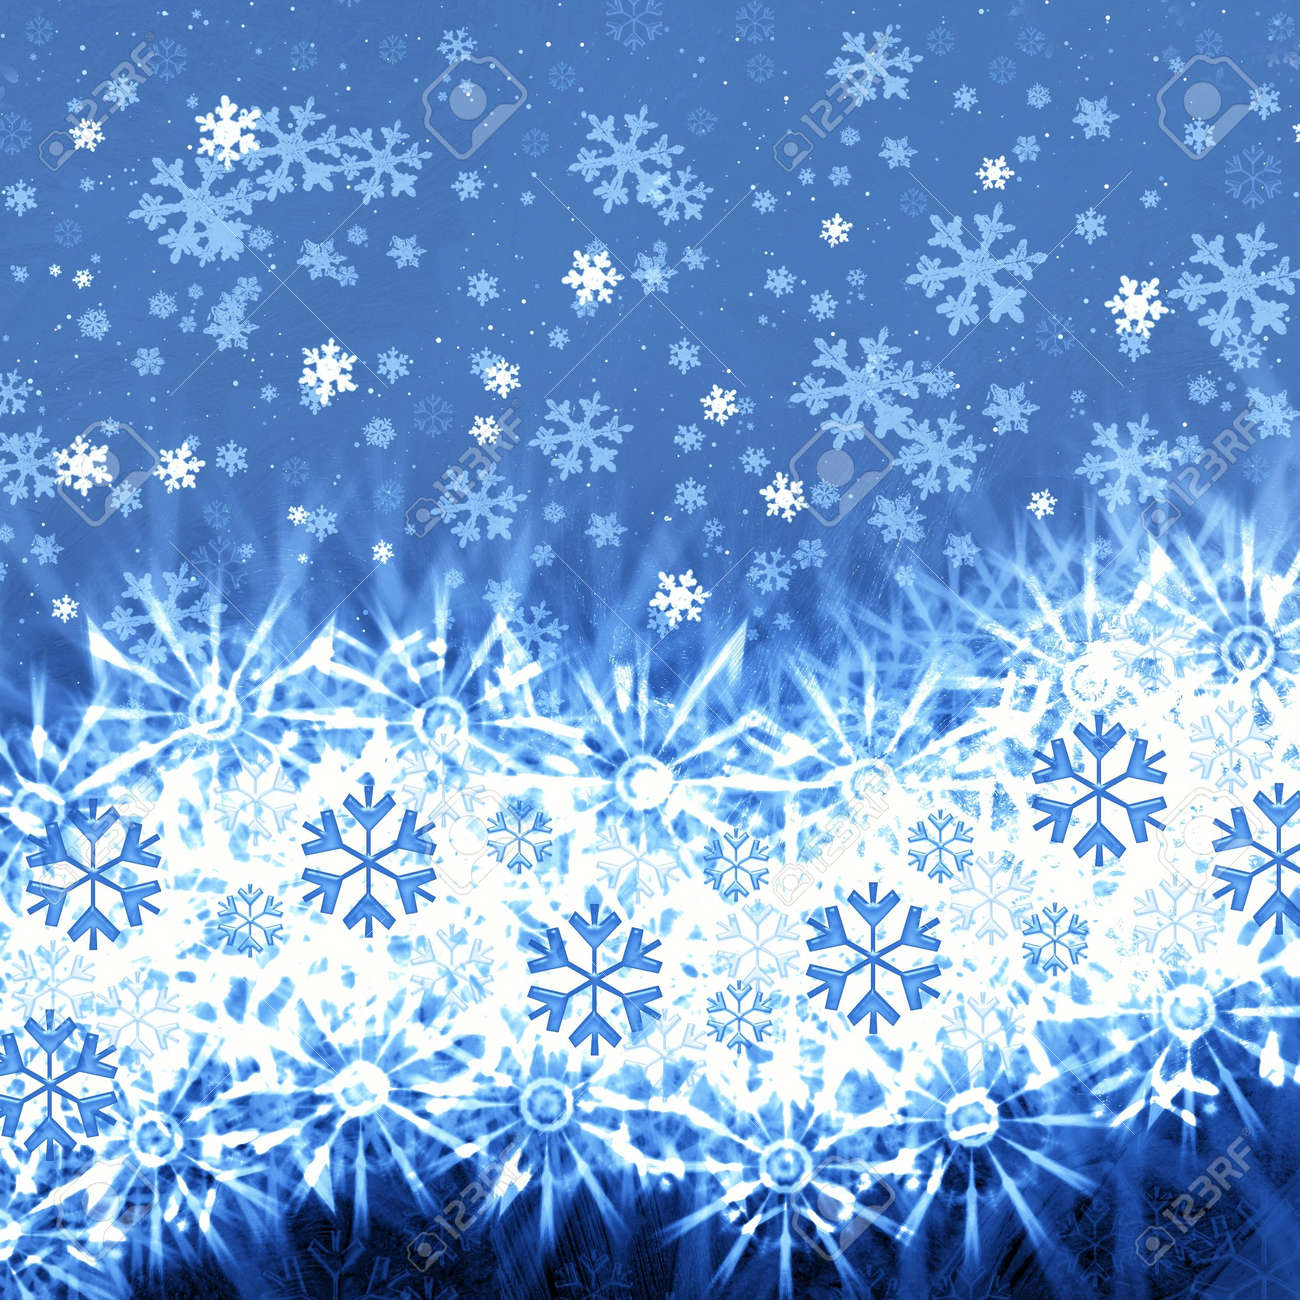 Frosty abstraction background with snowflakes Stock Photo - 3827114